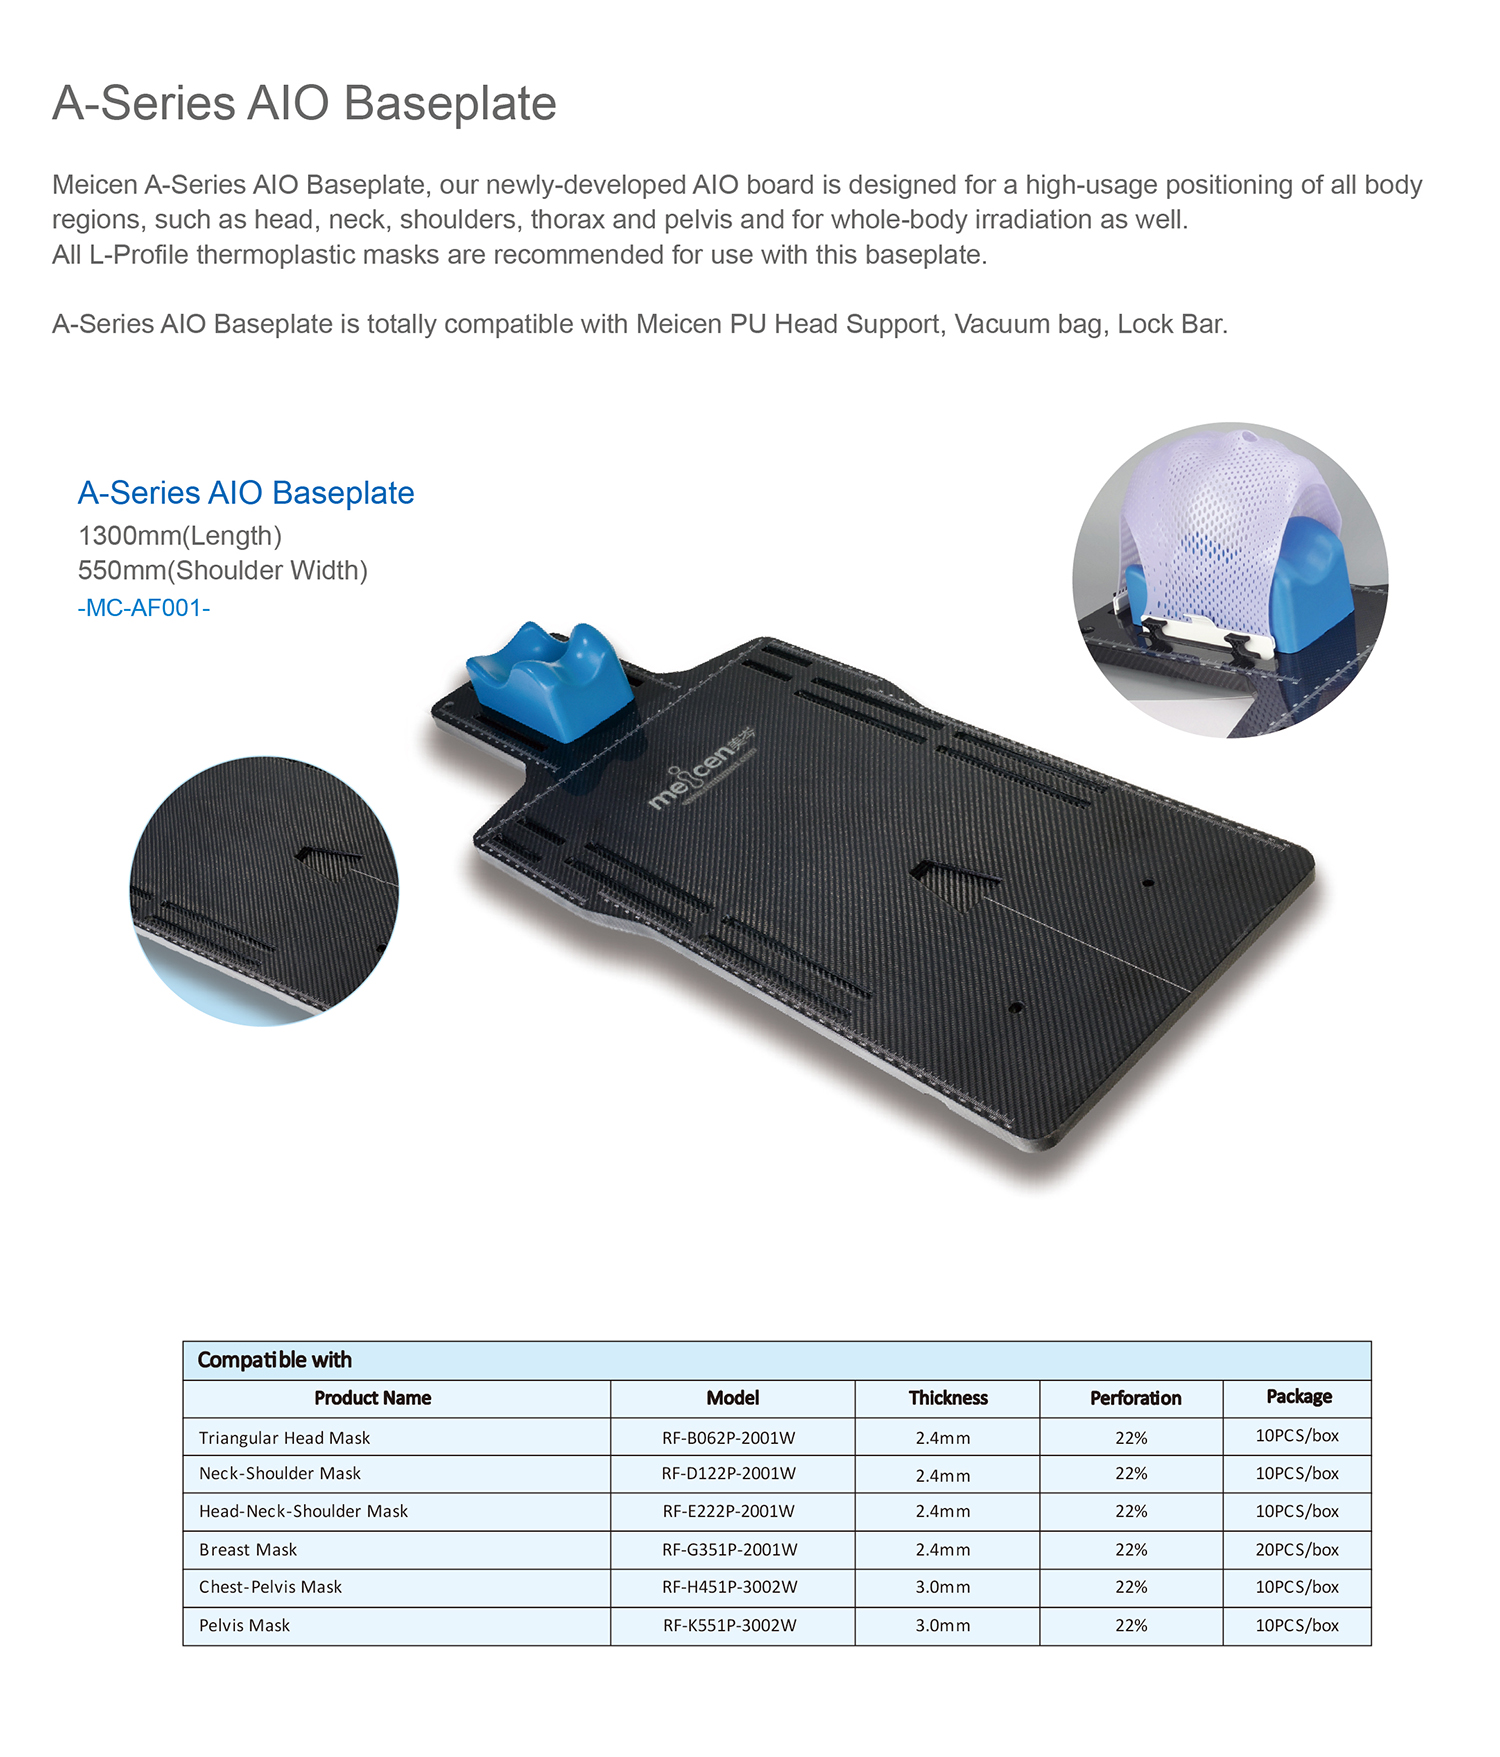 Meicen a-Series Aio Baseplate Carbon Fiber Radiotherapy Baseplate